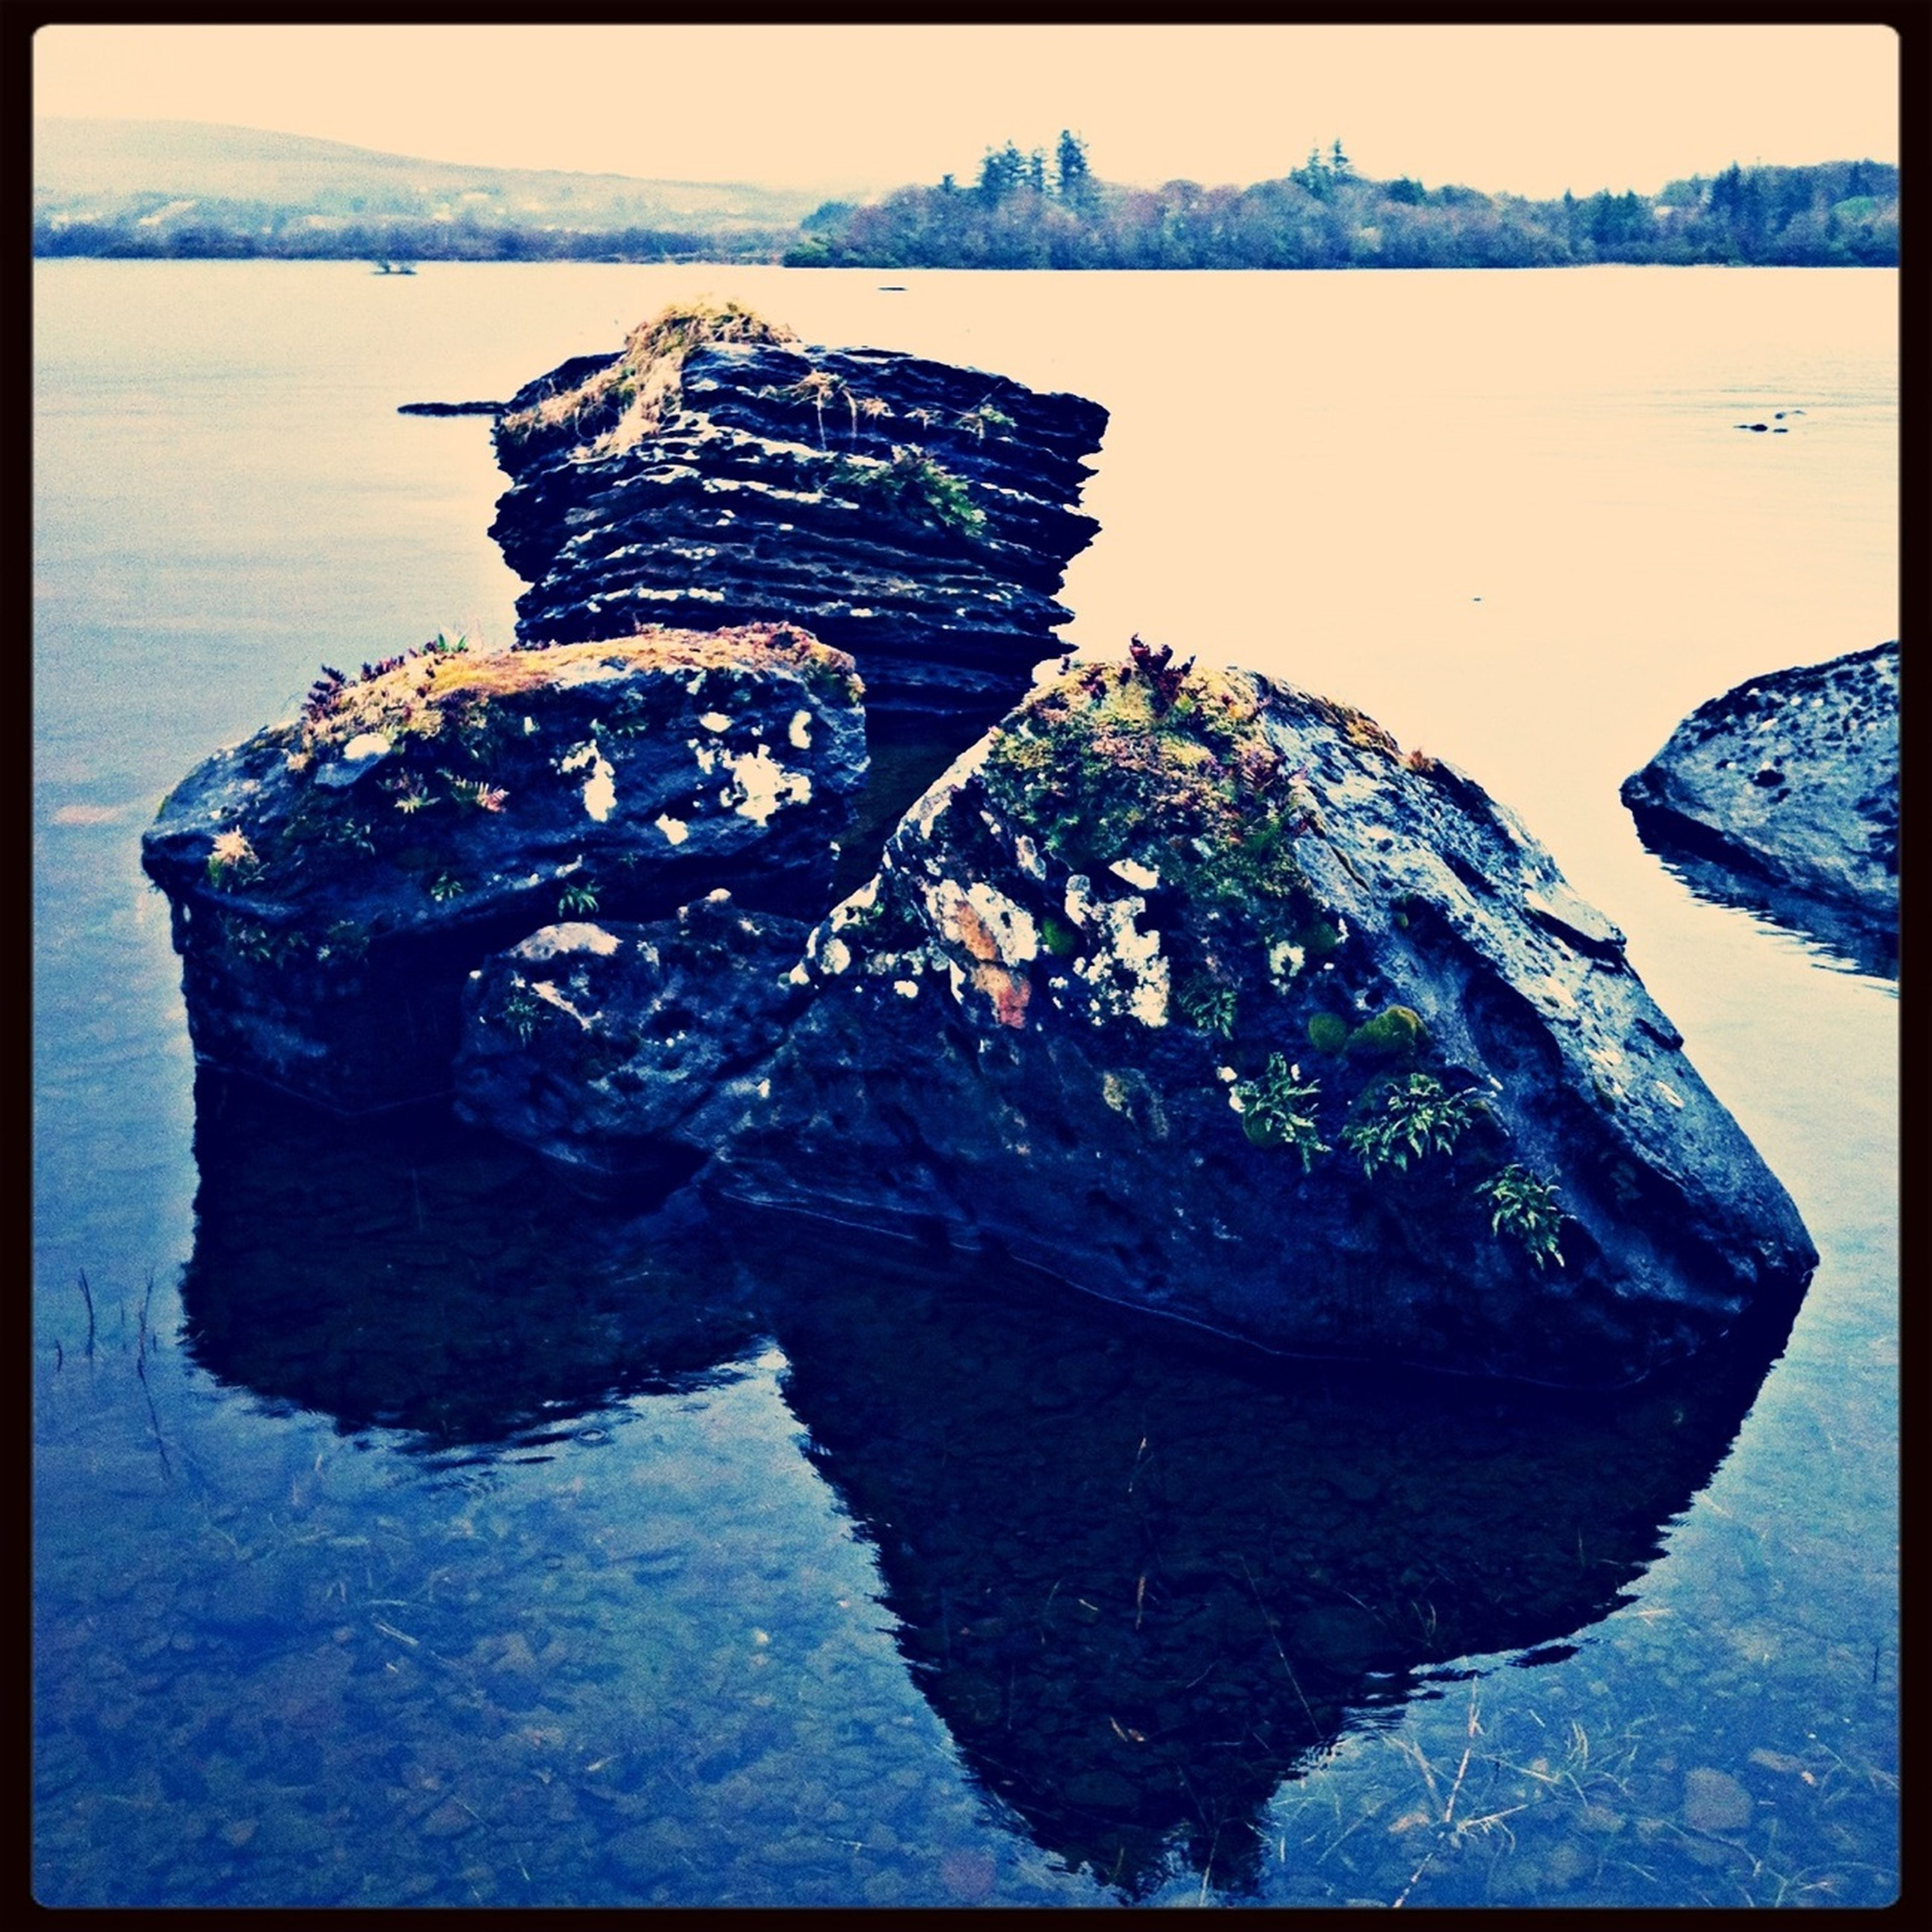 water, transfer print, auto post production filter, sea, tranquility, tranquil scene, rock - object, lake, nature, high angle view, scenics, reflection, waterfront, beauty in nature, outdoors, day, shore, beach, river, no people